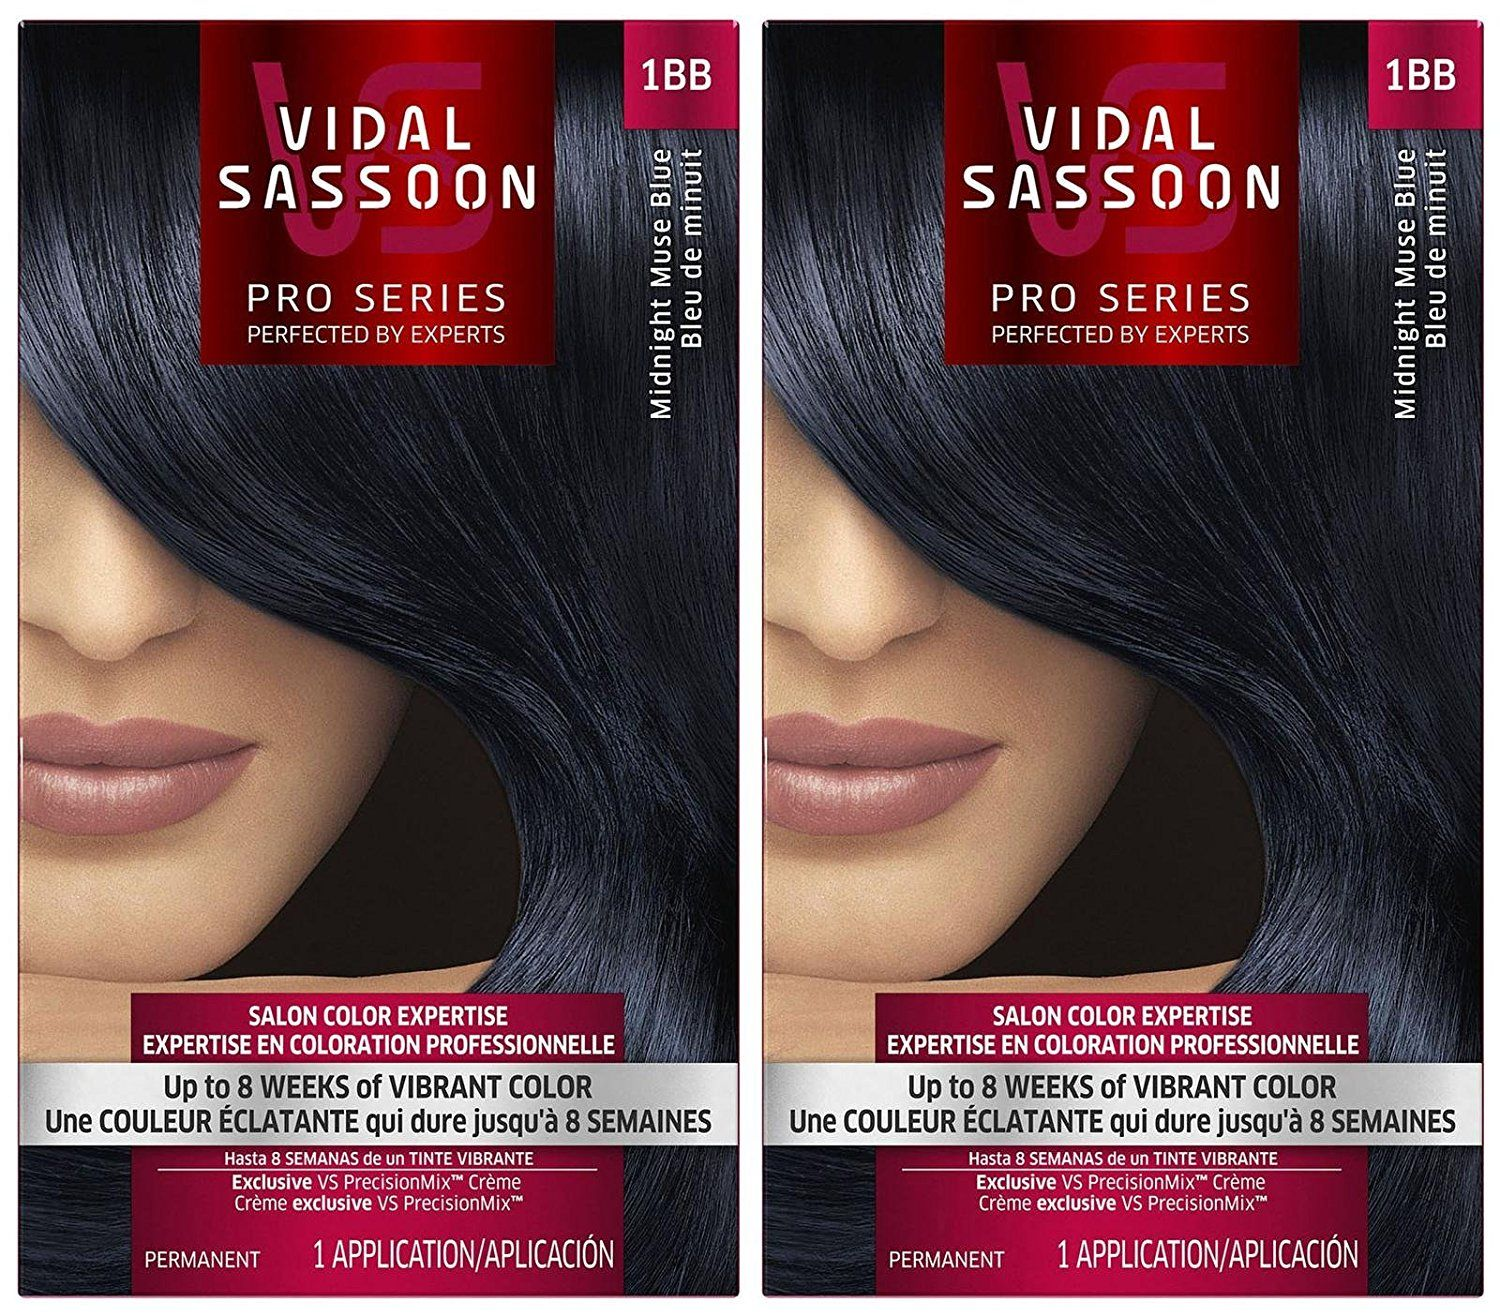 Vidal Sassoon London Luxe Hair Color Midnight Muse Blue 1bb 2